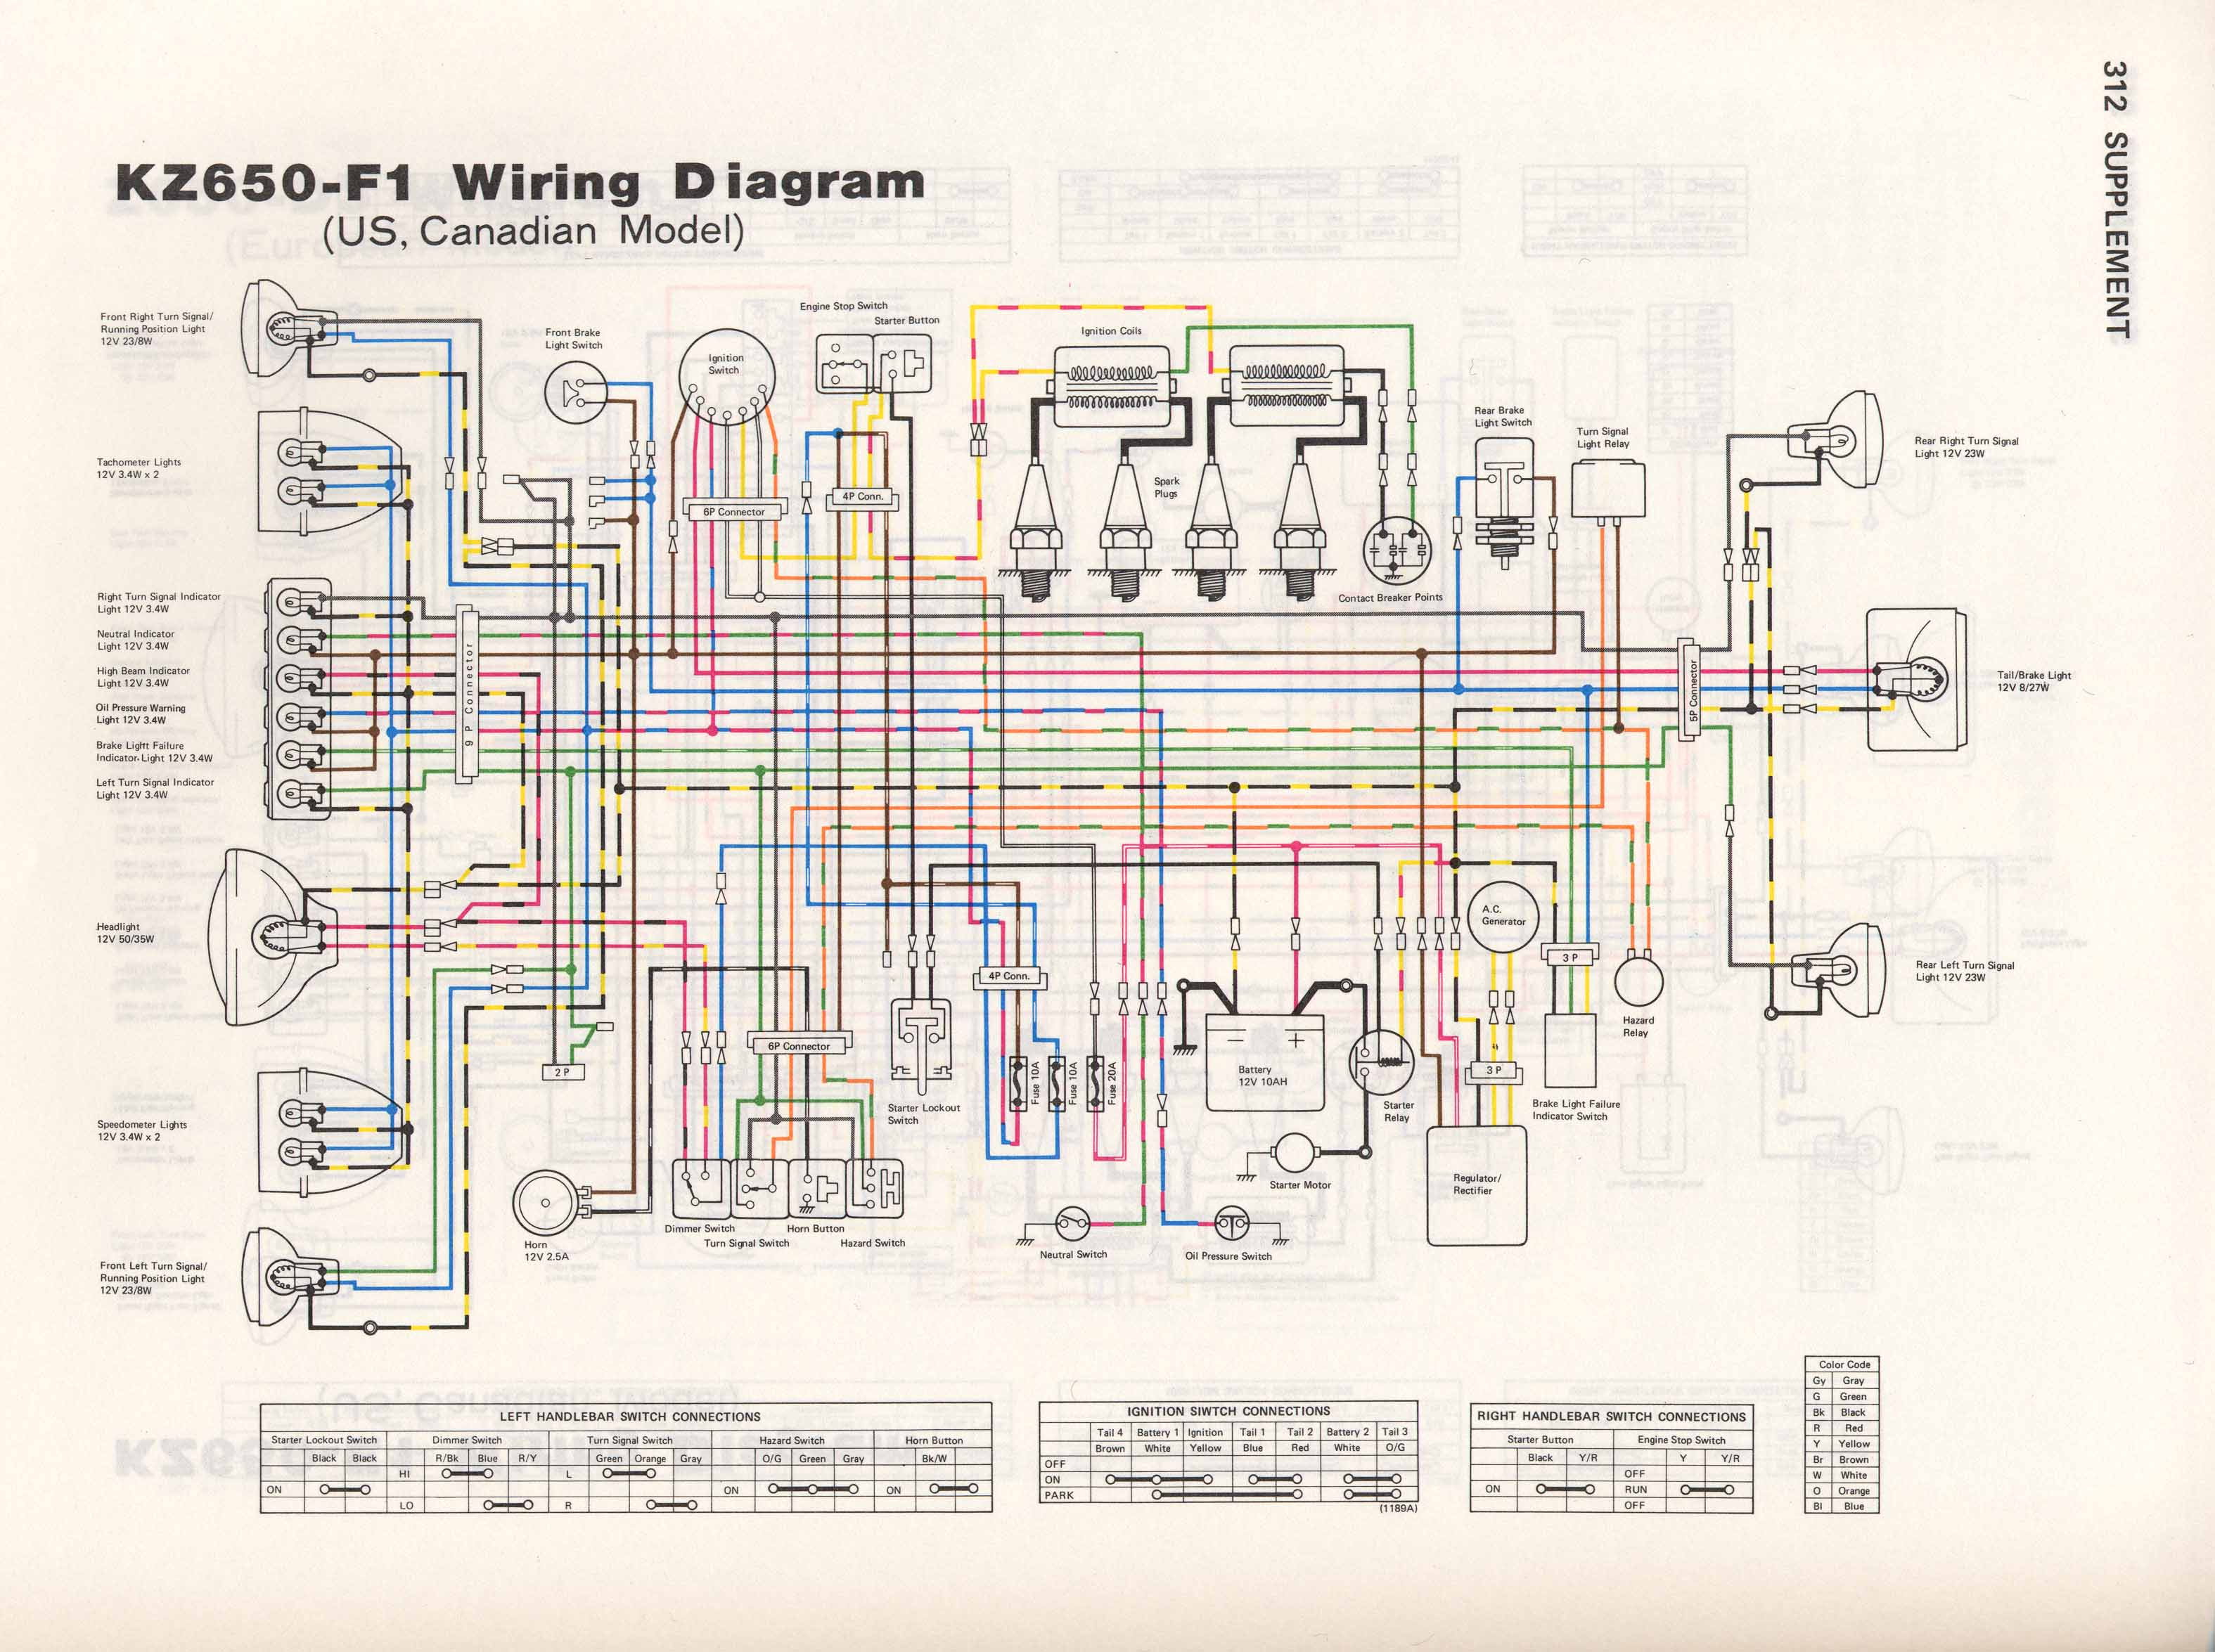 Kawasaki Kz650 Wiring Diagram Detailed Schematics 2009 Ex500 Info Diagrams Pride Revo